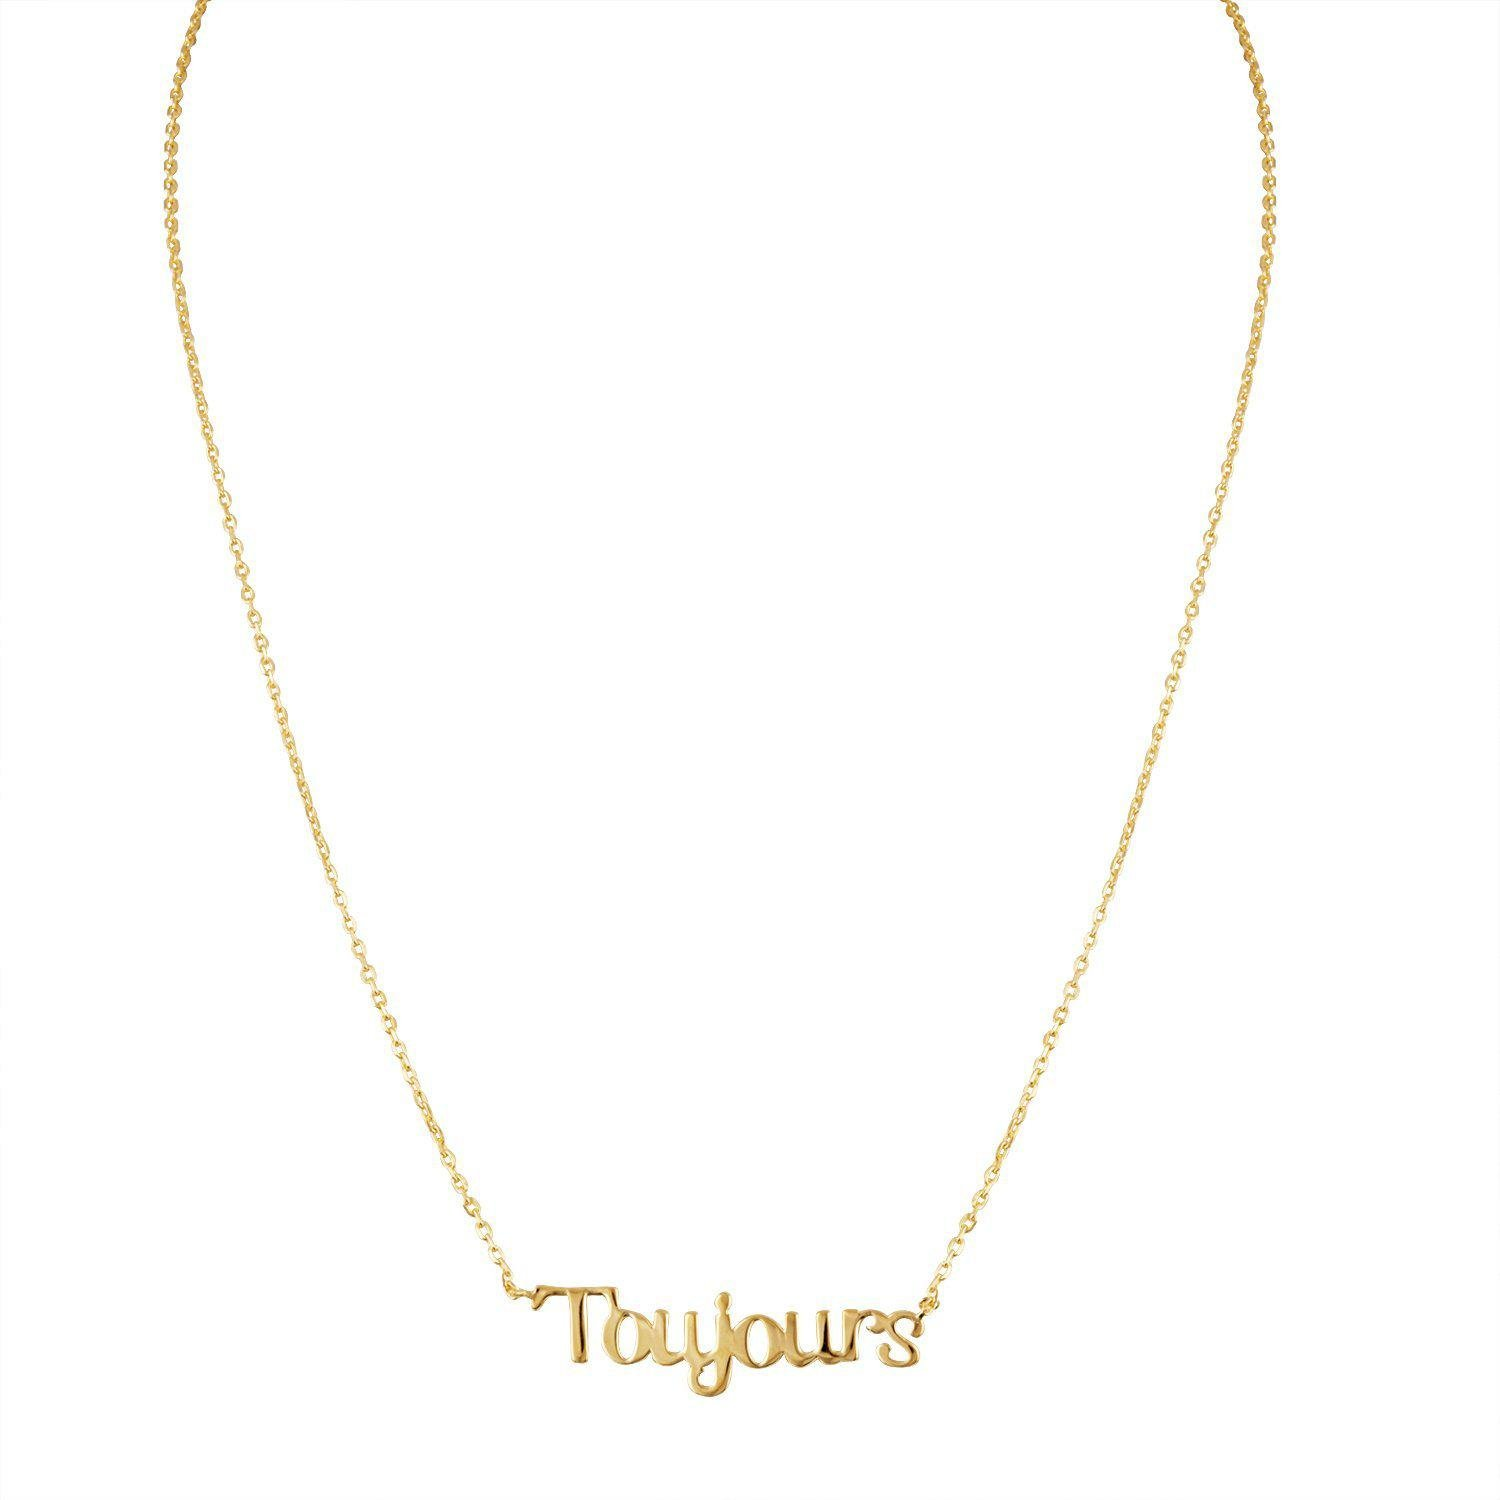 Toujours Necklace in Gold